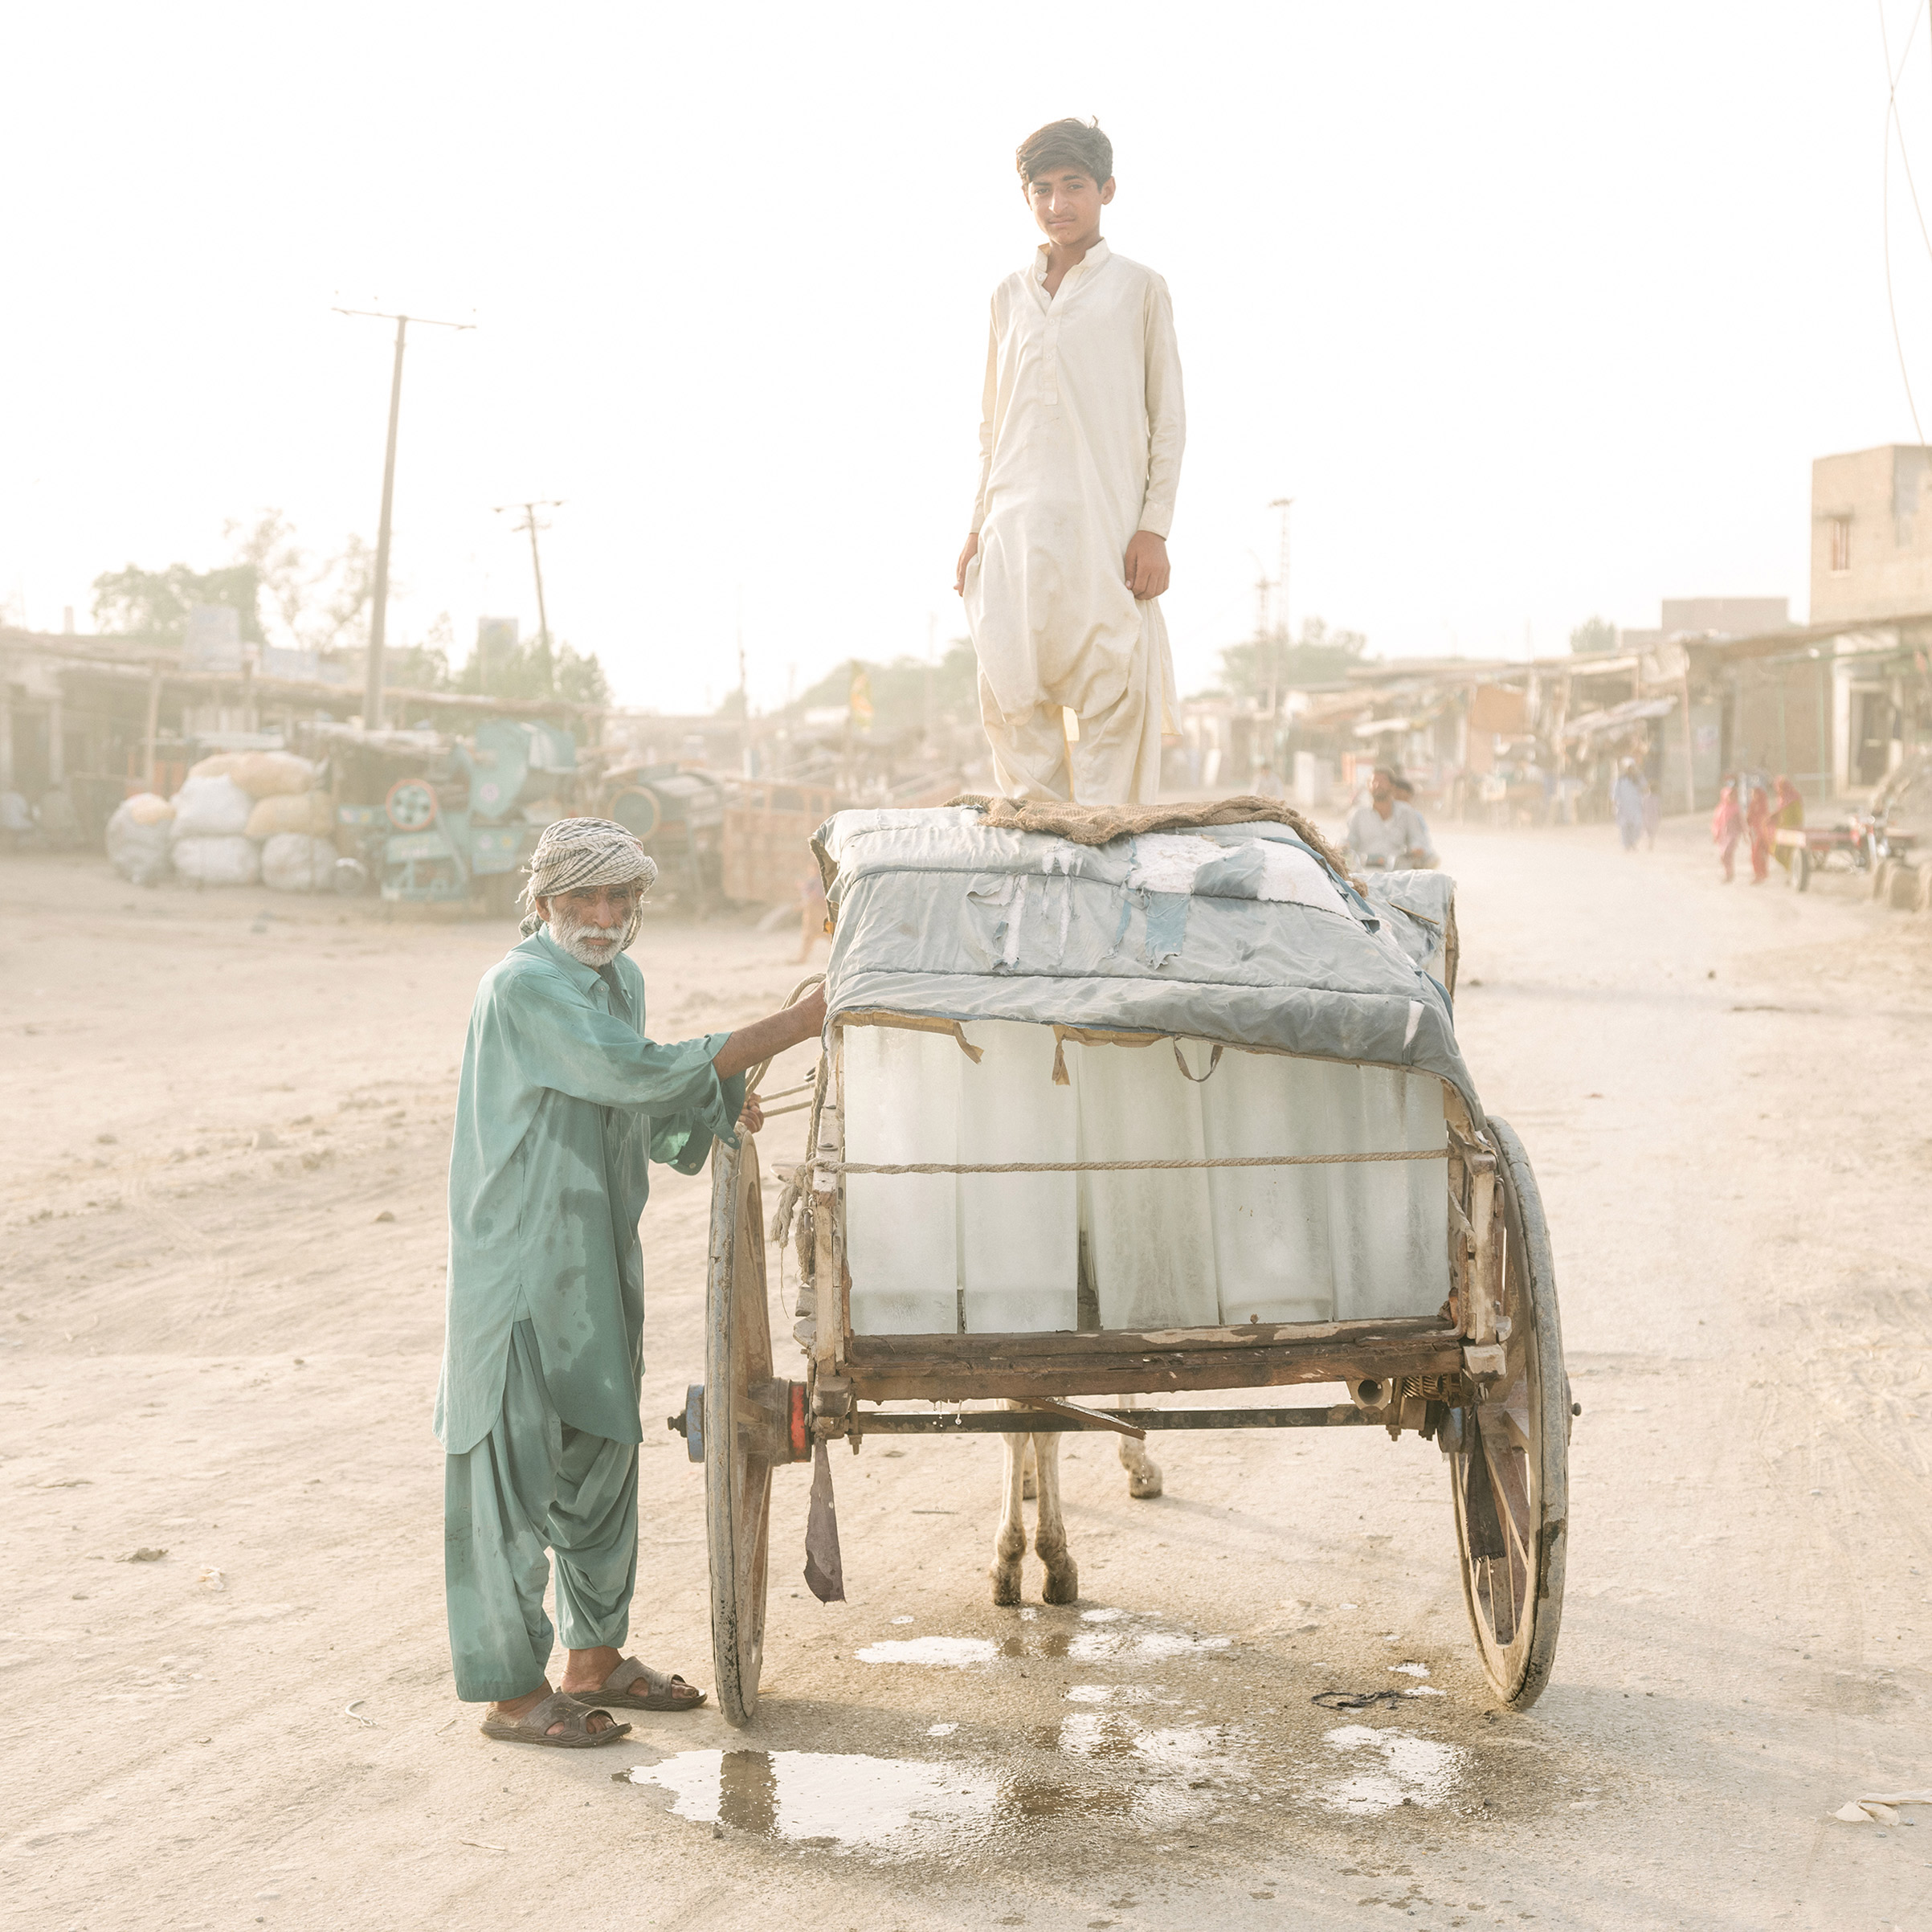 Ice sellers in Pakistan.  The Hottest City on Earth,  Sept. 23 issue.